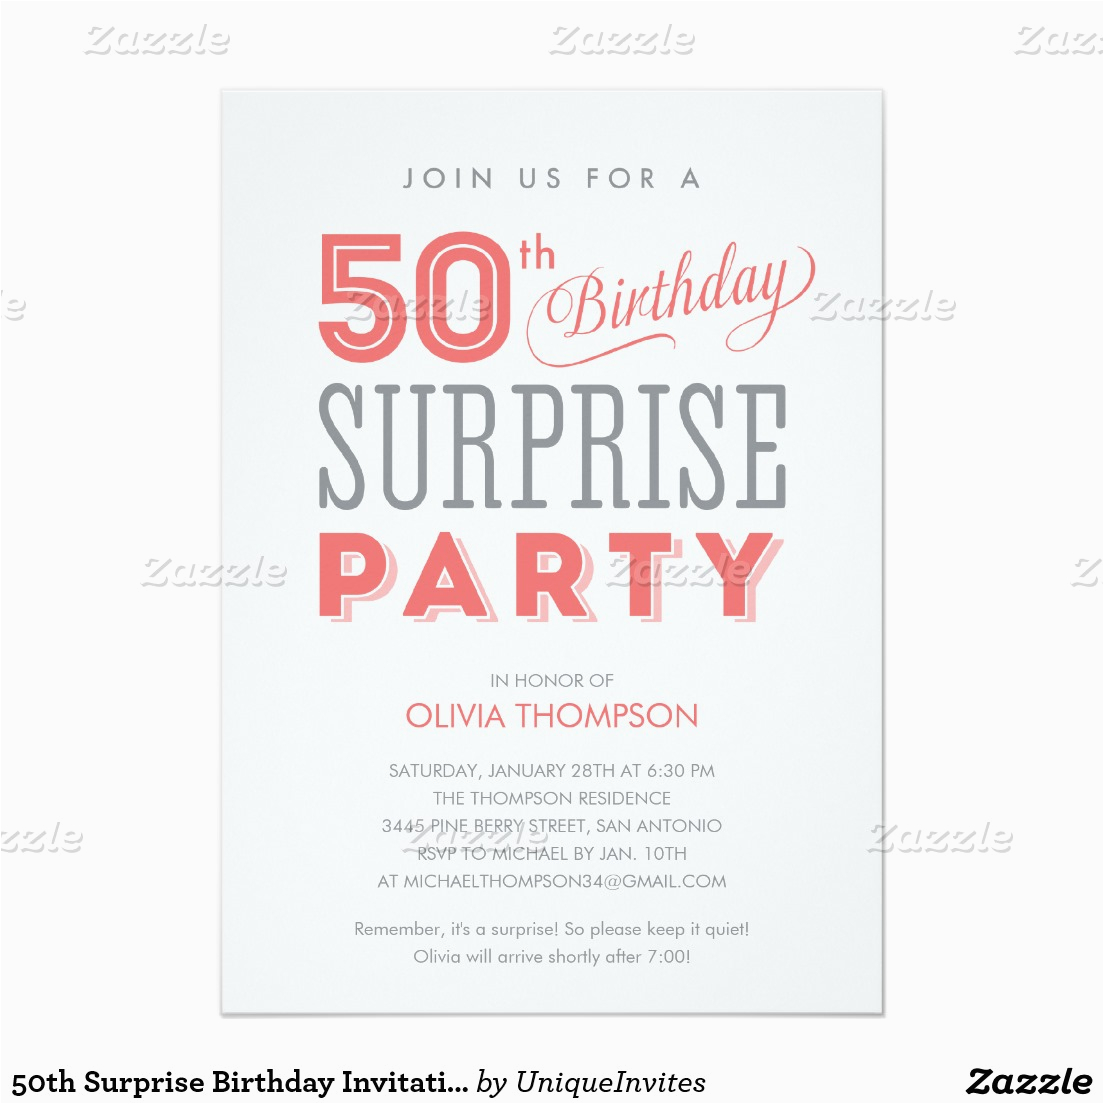 Invitations 50th Birthday Party Wordings Surprise Invitation Wording